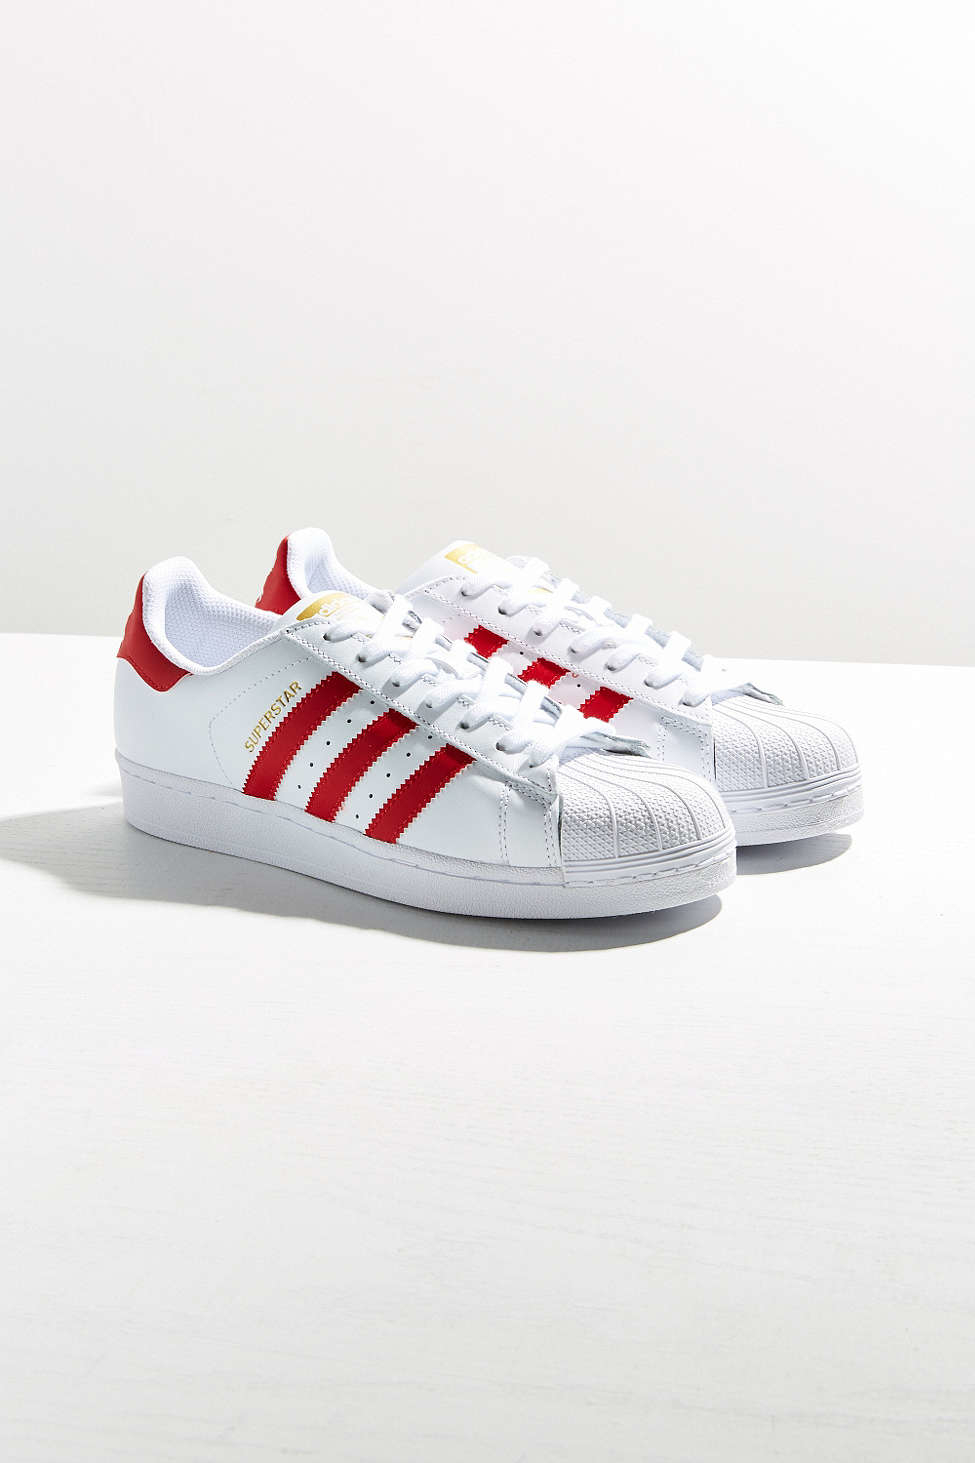 Adidas Superstar Shoes Urban Outfitters